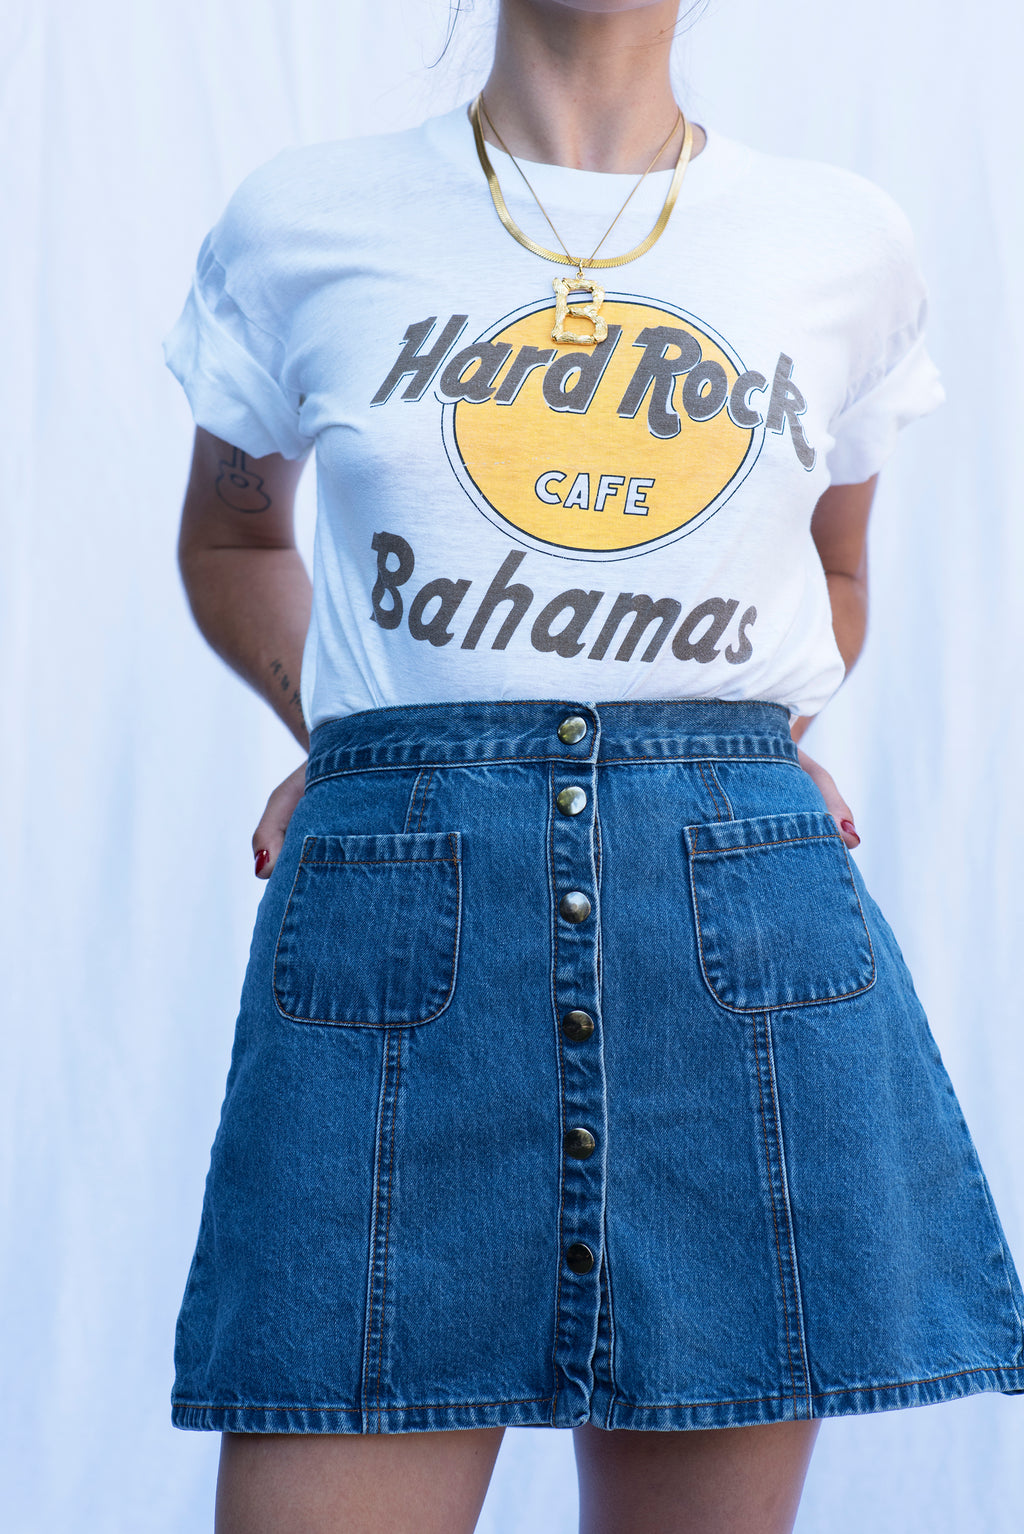 Vintage Hard Rock Cafe Bahamas Tee